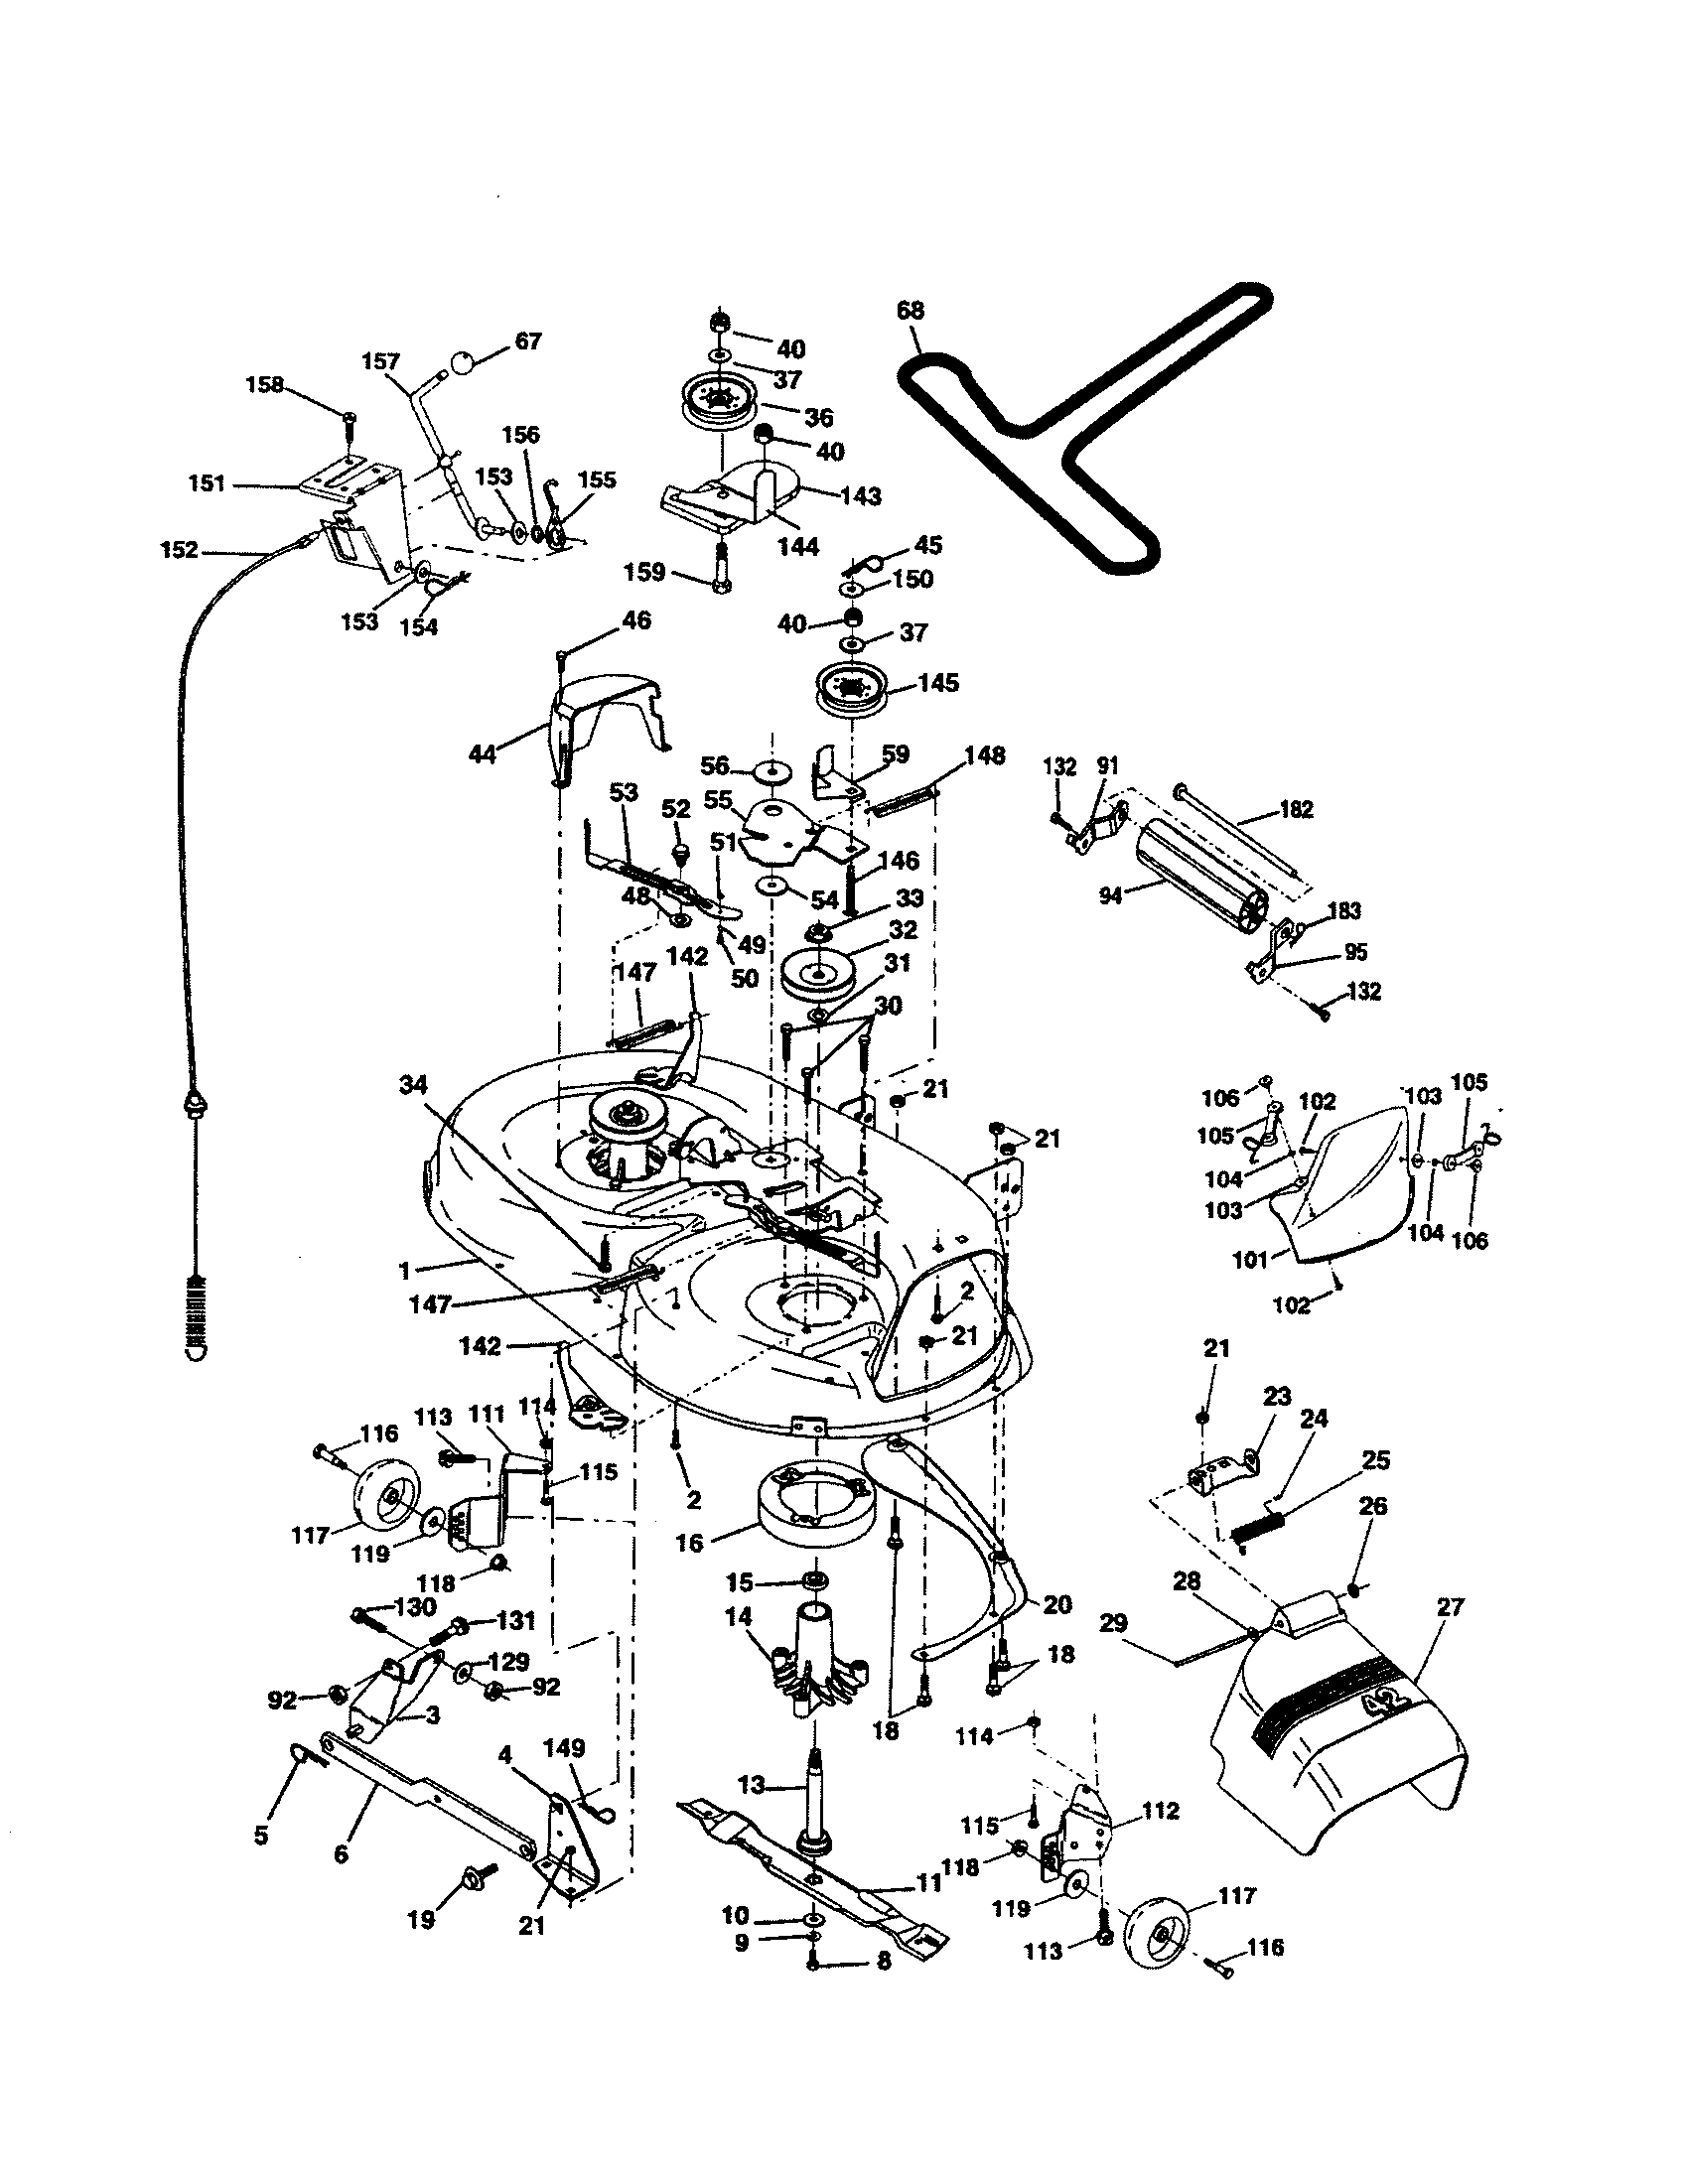 Poulan Pro Riding Mower Wiring Diagram Lawn